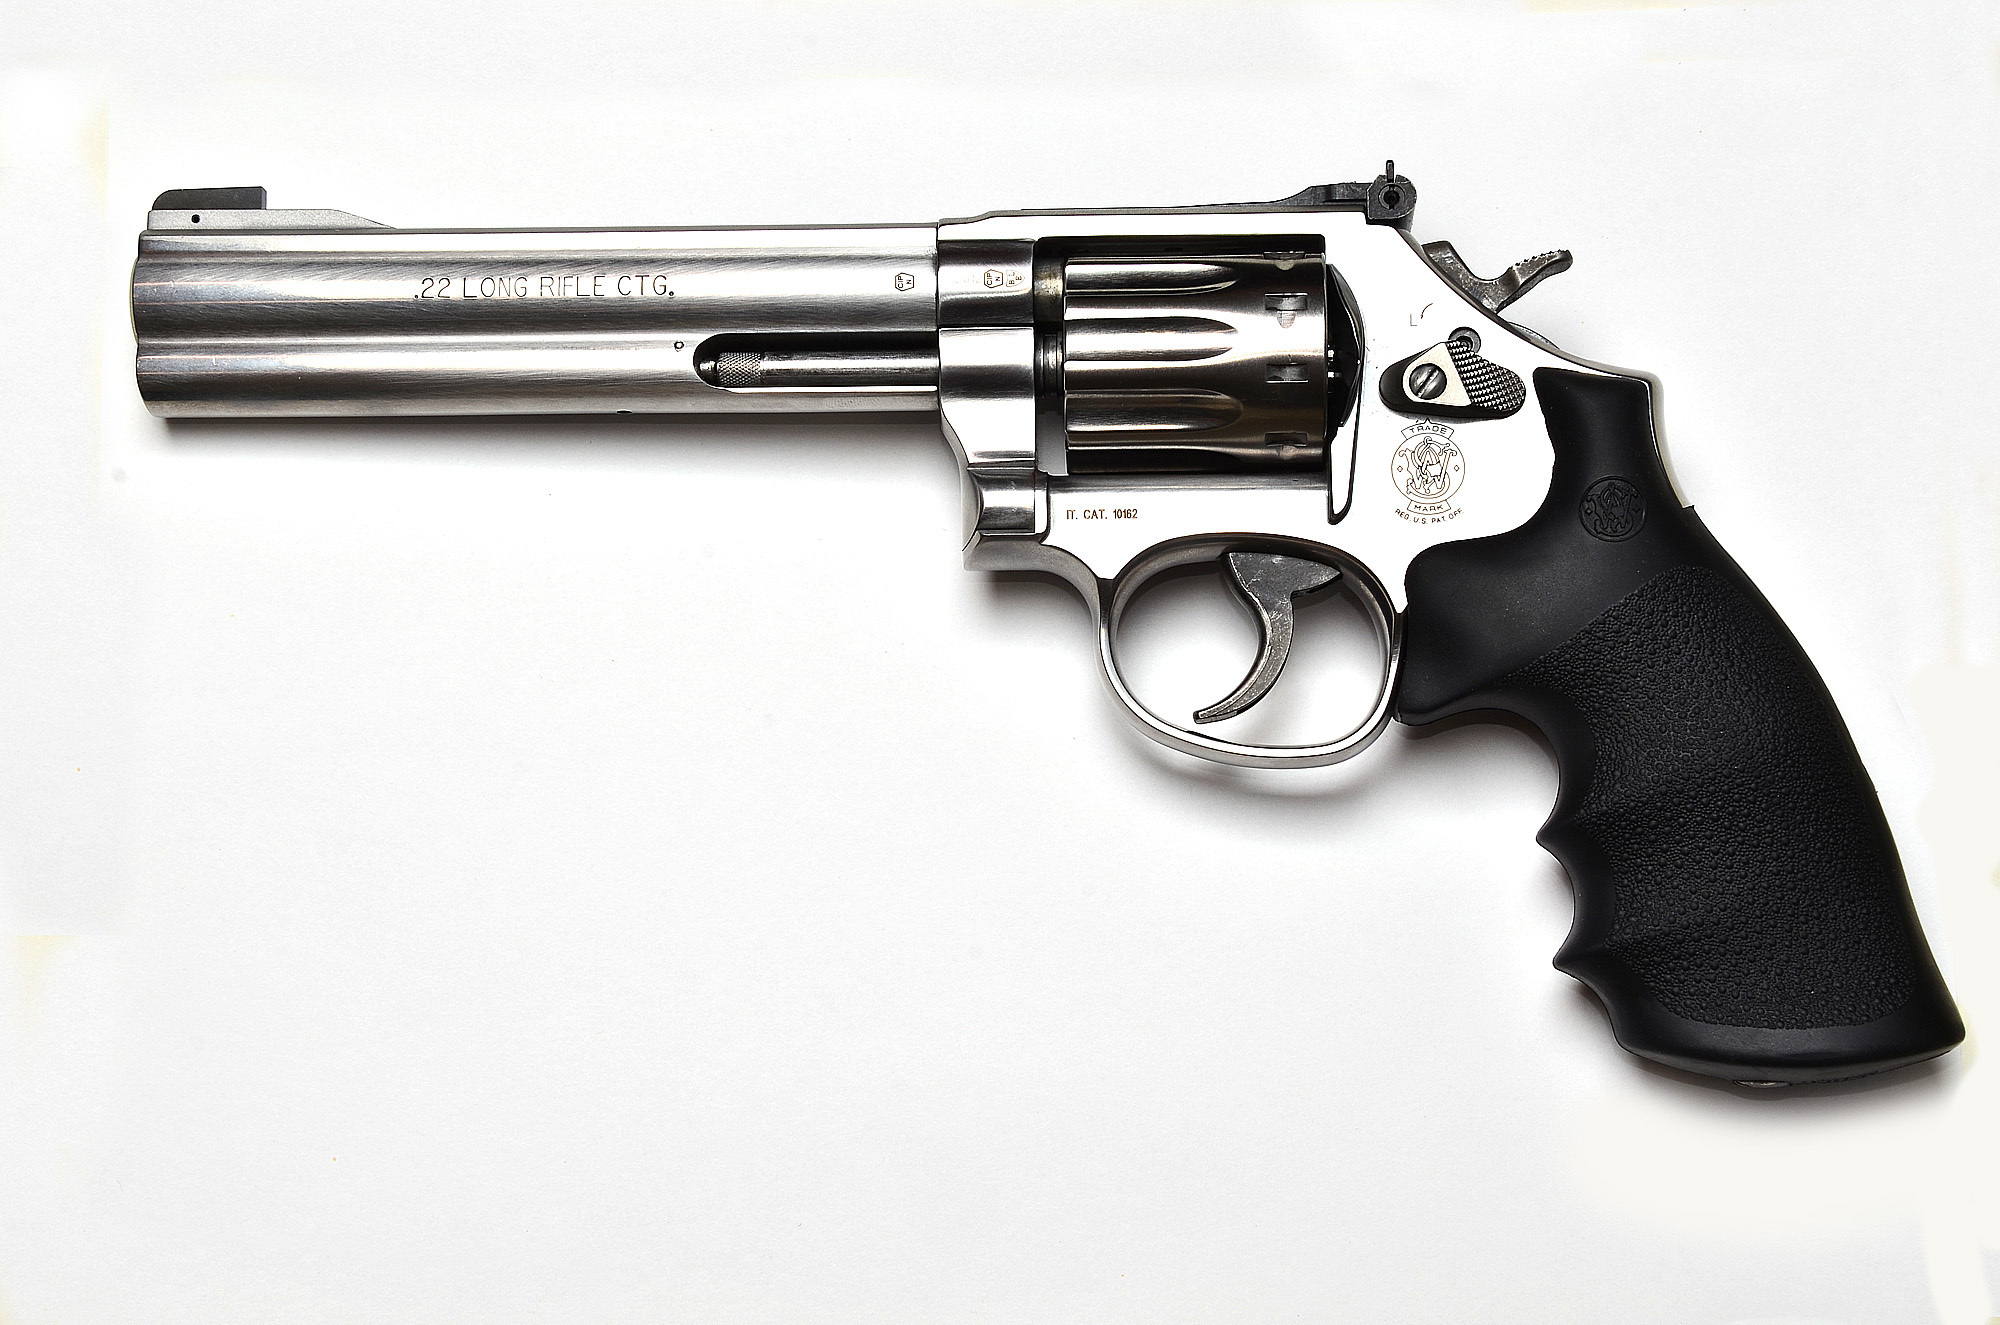 Smith & Wesson Model 617 - Smith & Wesson - Pistols - Articles ...